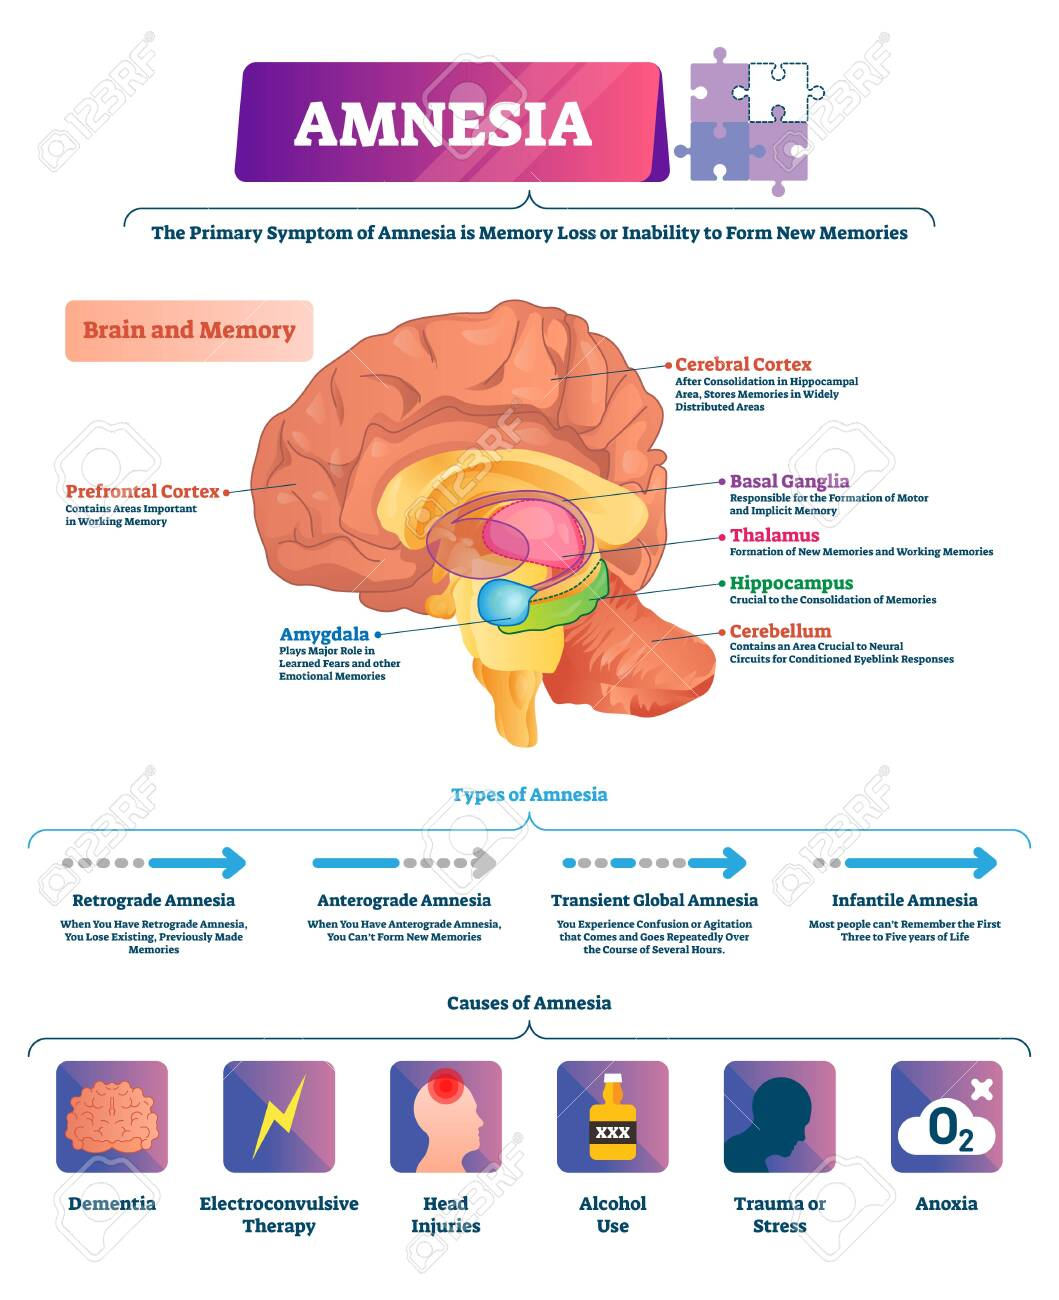 hight resolution of amnesia vector illustration labeled brain memory loss disease types scheme diagram with cerebral